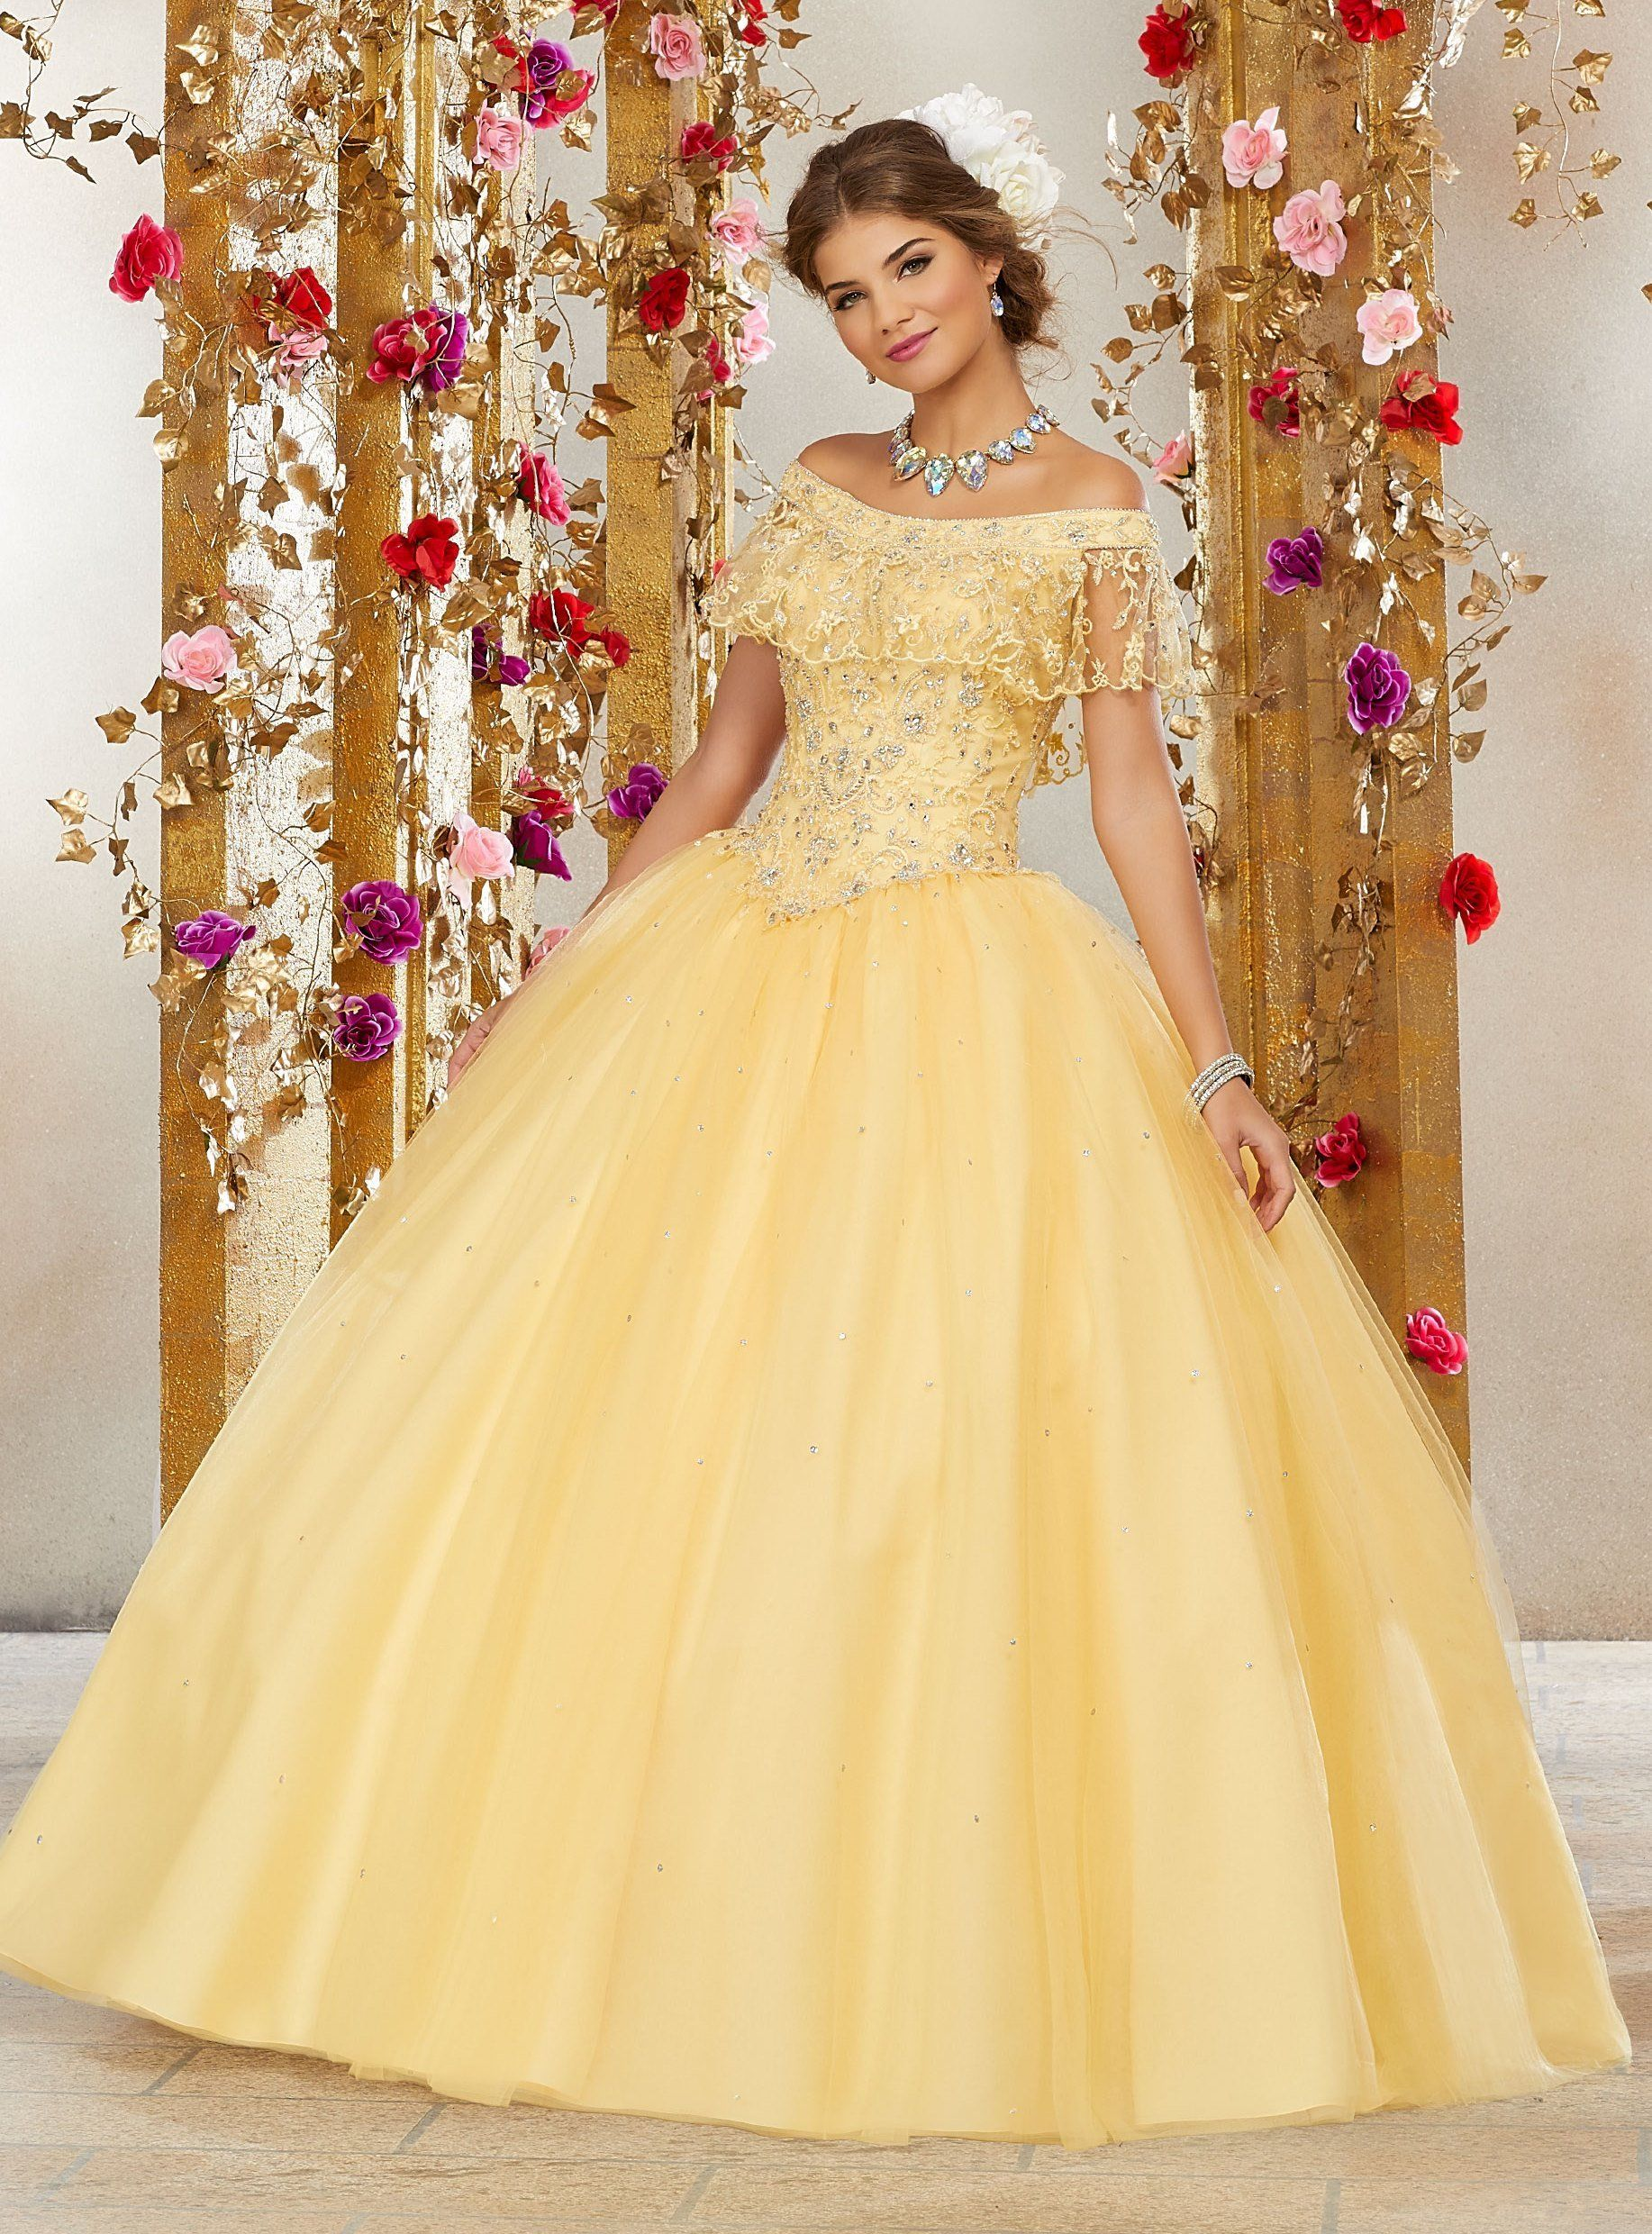 ad511d11d4d9 Quince Dresses, Ball Gowns, Backless Homecoming Dresses, Prom Party Dresses,  Ball Dresses